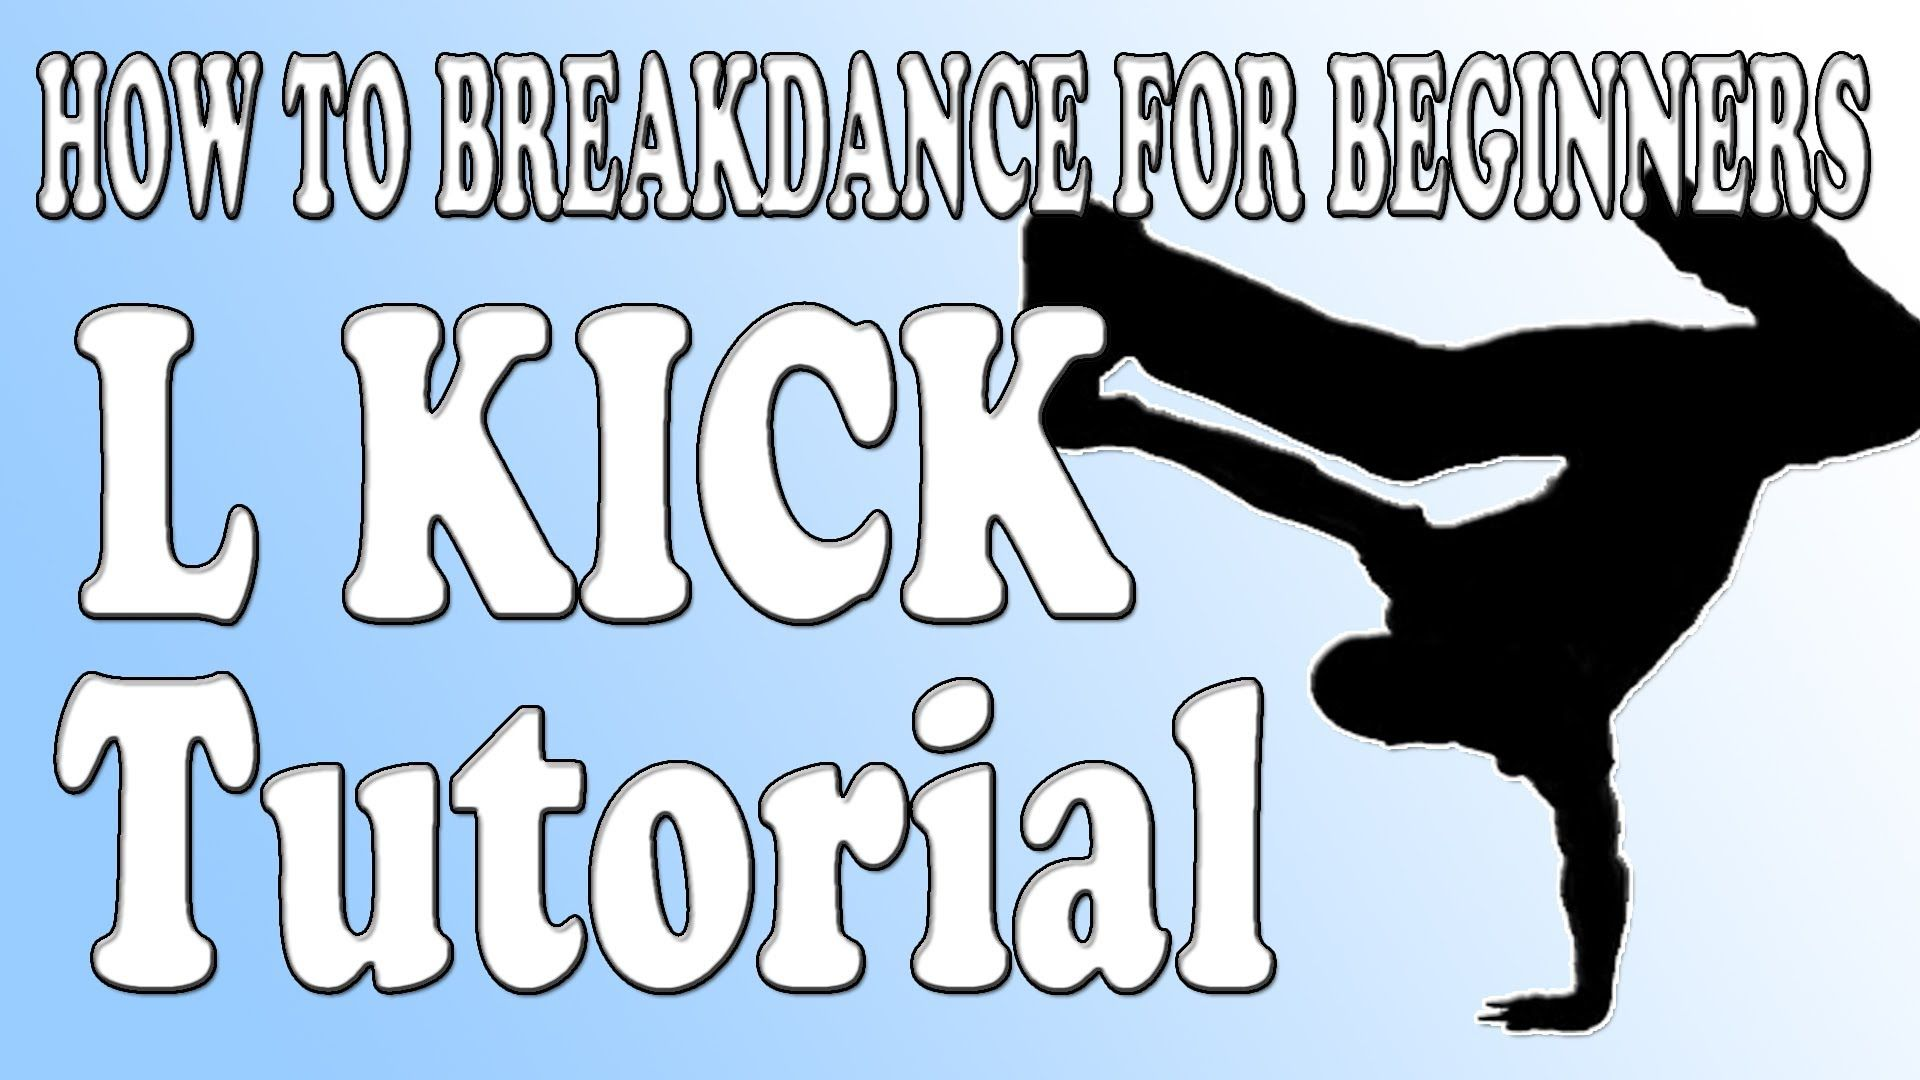 How to breakdance for beginners l kick freeze freeze basics how to breakdance for beginners l kick freeze freeze basics baditri Image collections